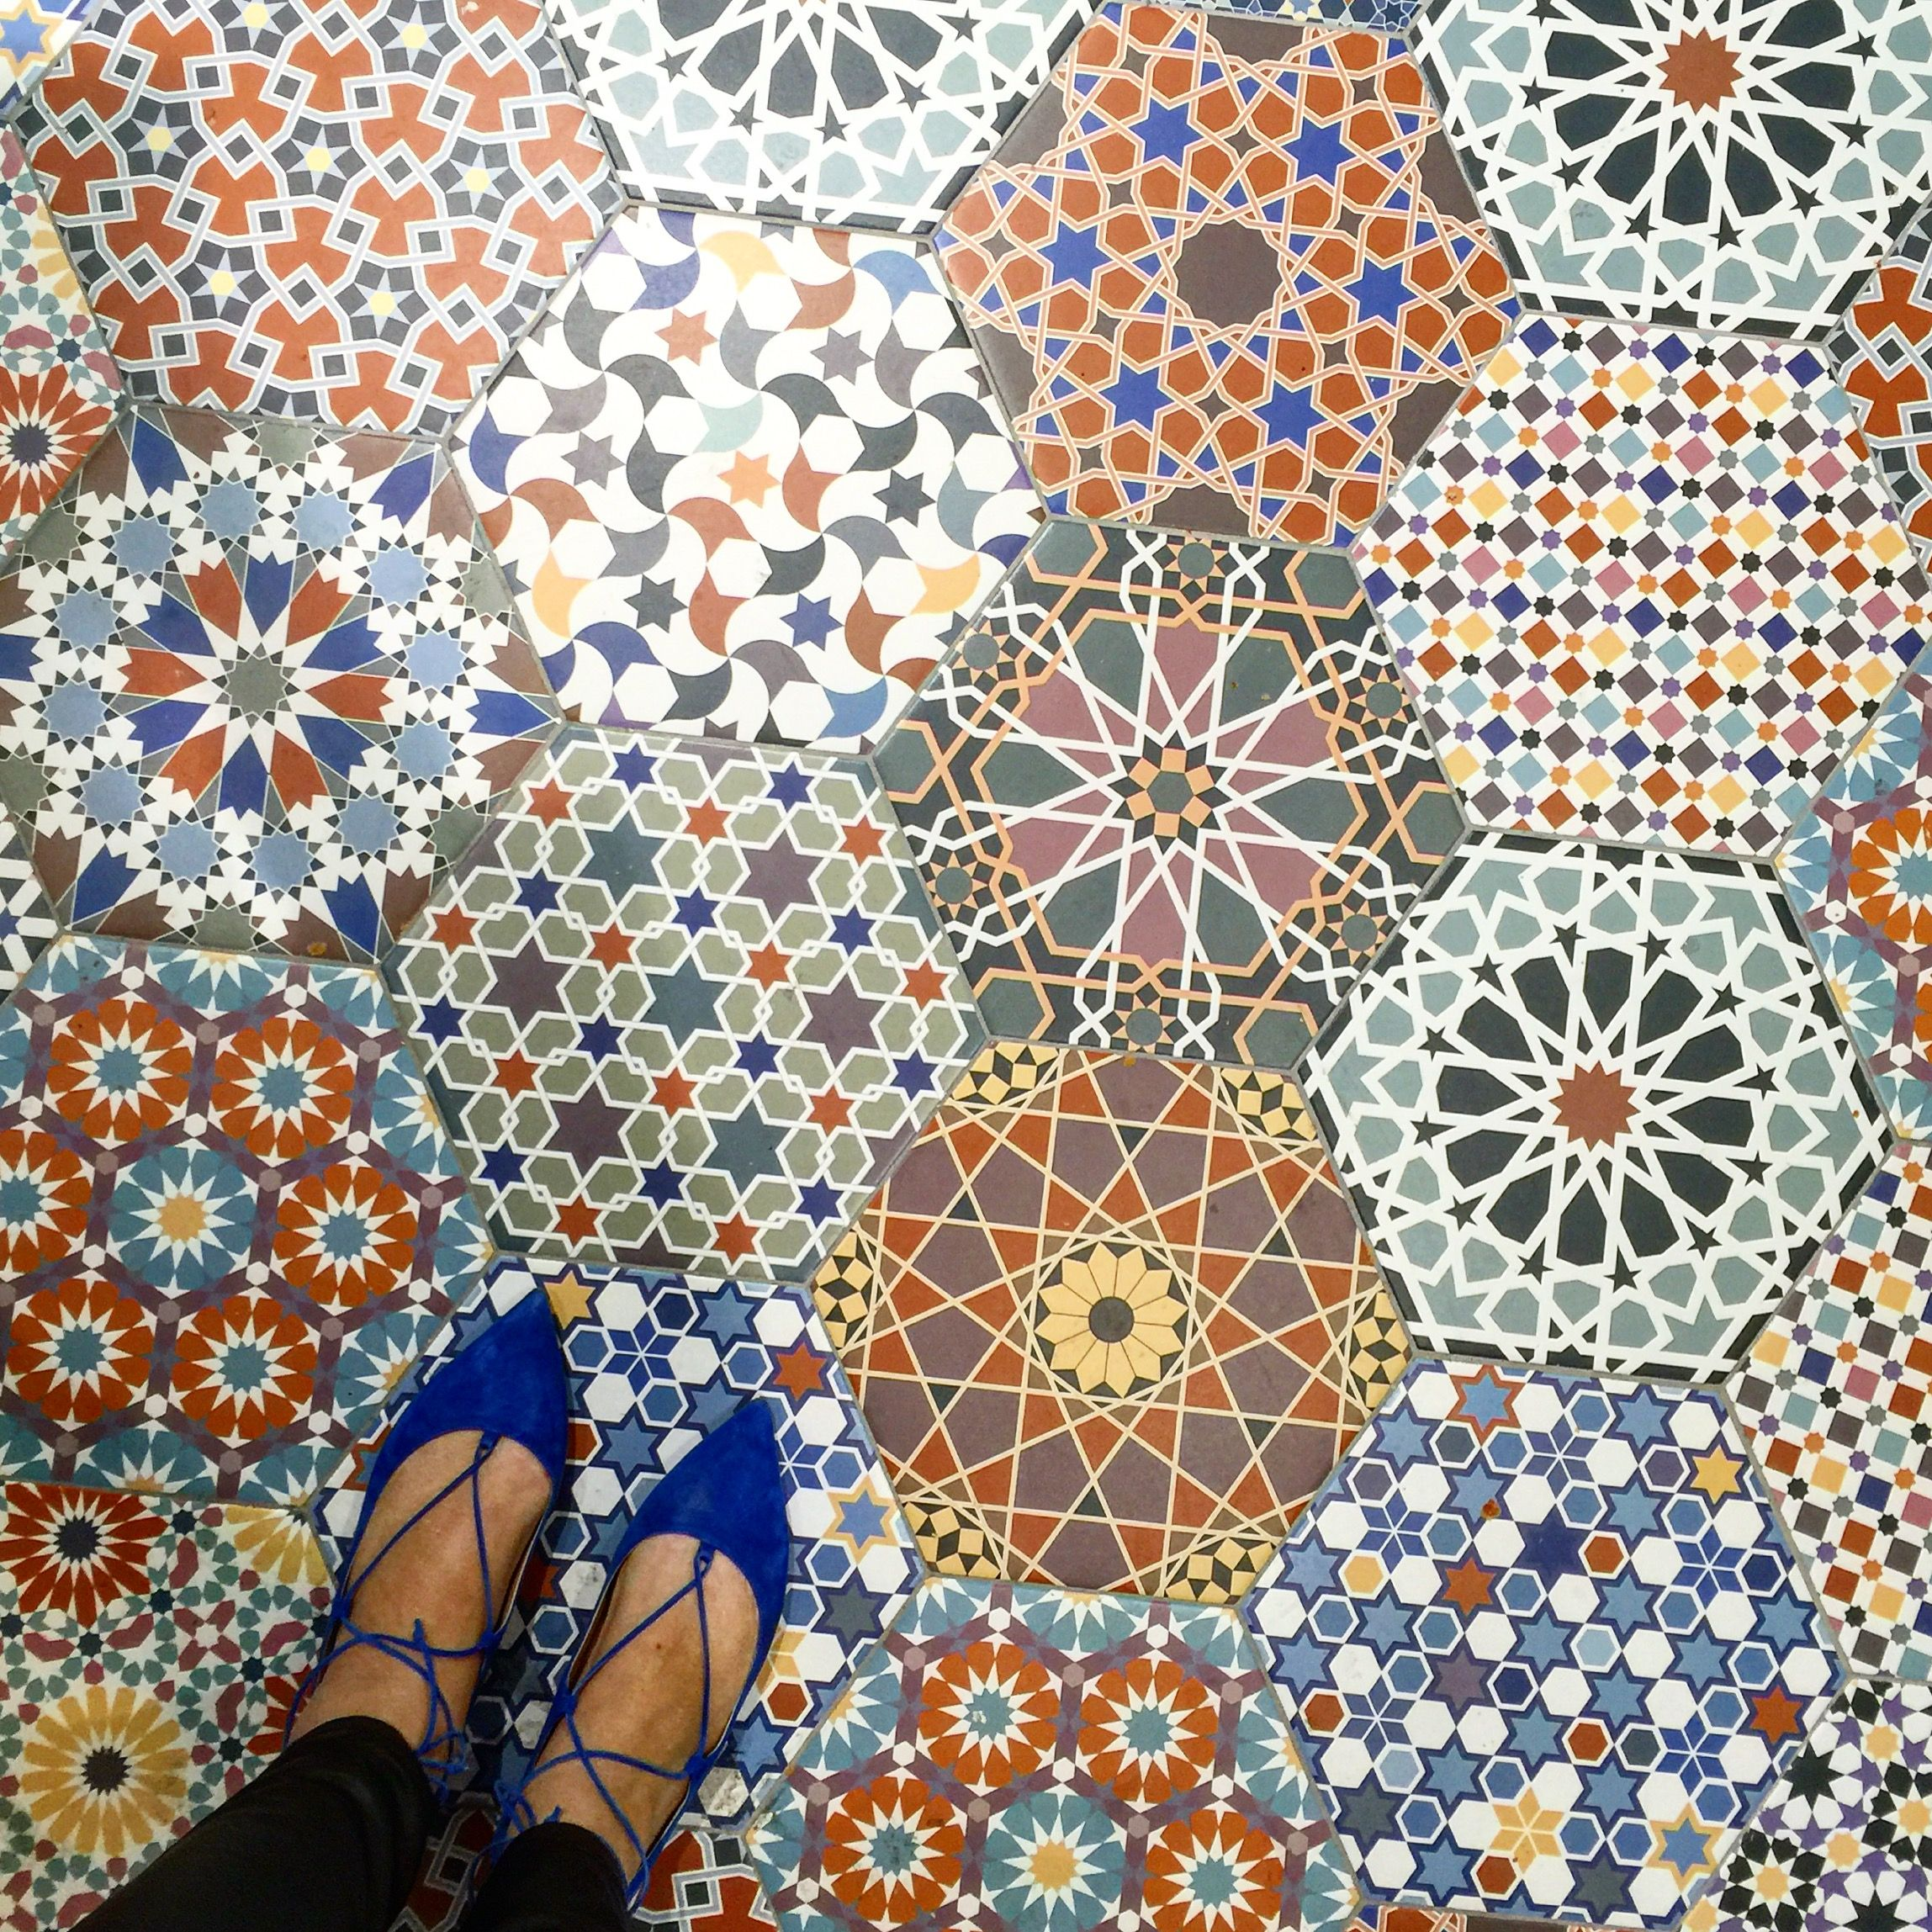 Floor mats in spanish - Spanish Tile For Miles At Cevisama Part 2 The English Room